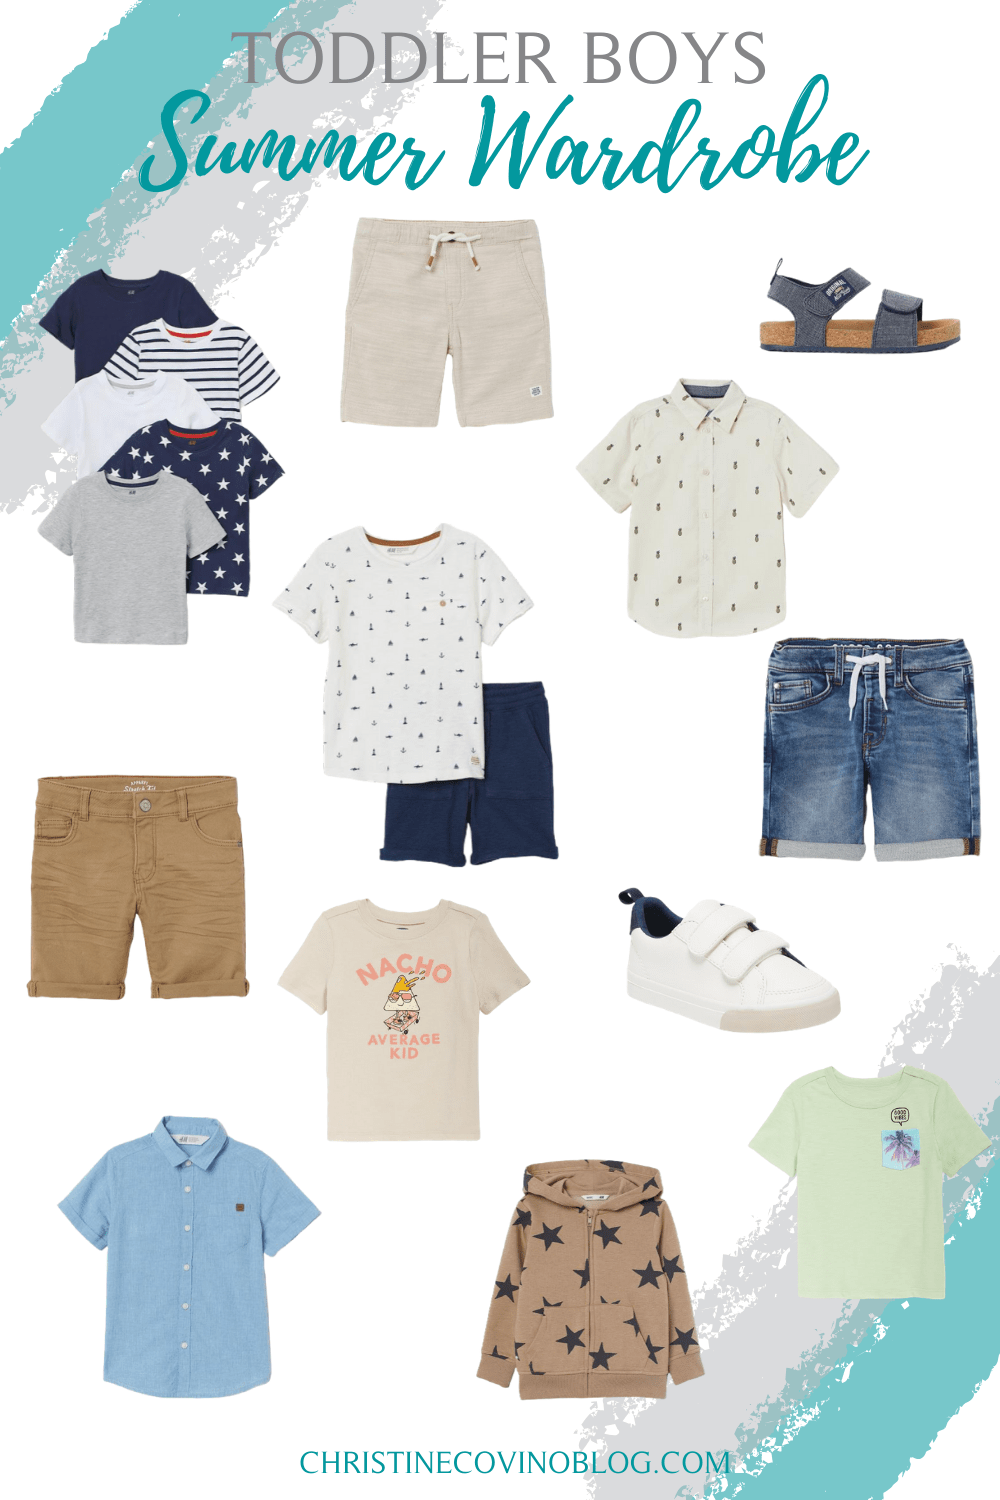 collage of summer wardrobe for toddler boys